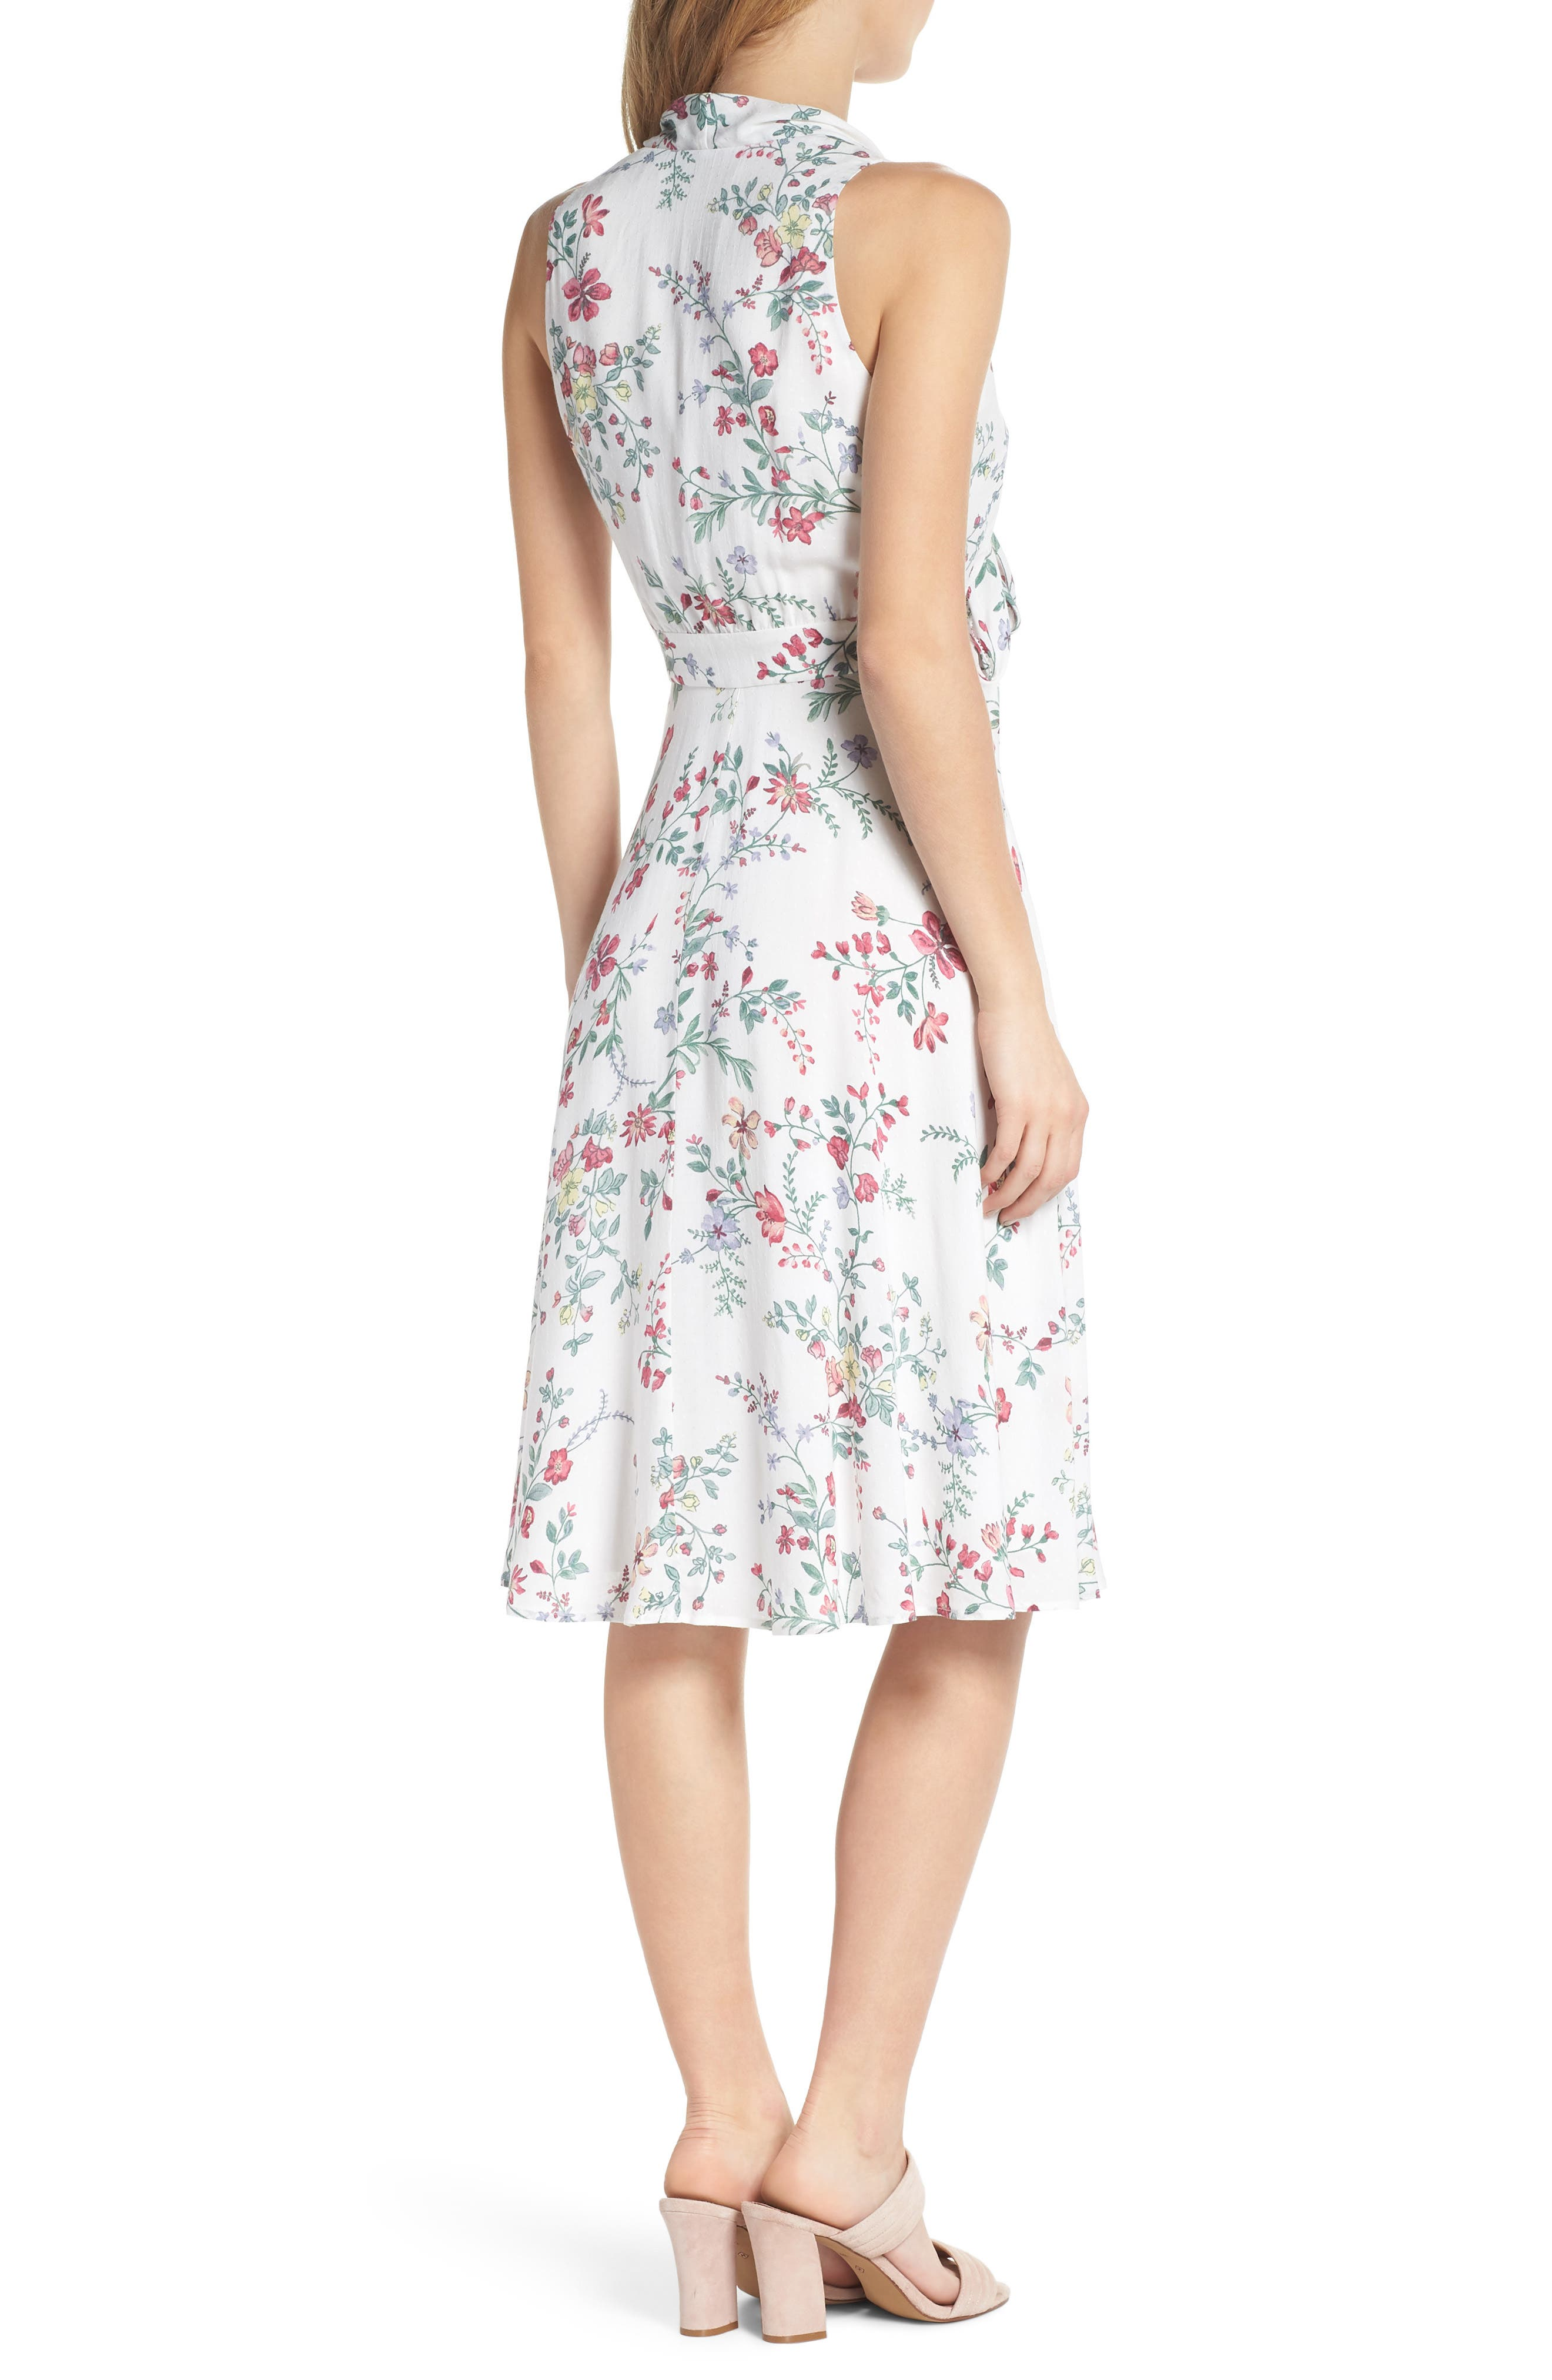 Alexis Delicate Blossom Print Tie Neck Dress,                             Alternate thumbnail 2, color,                             650